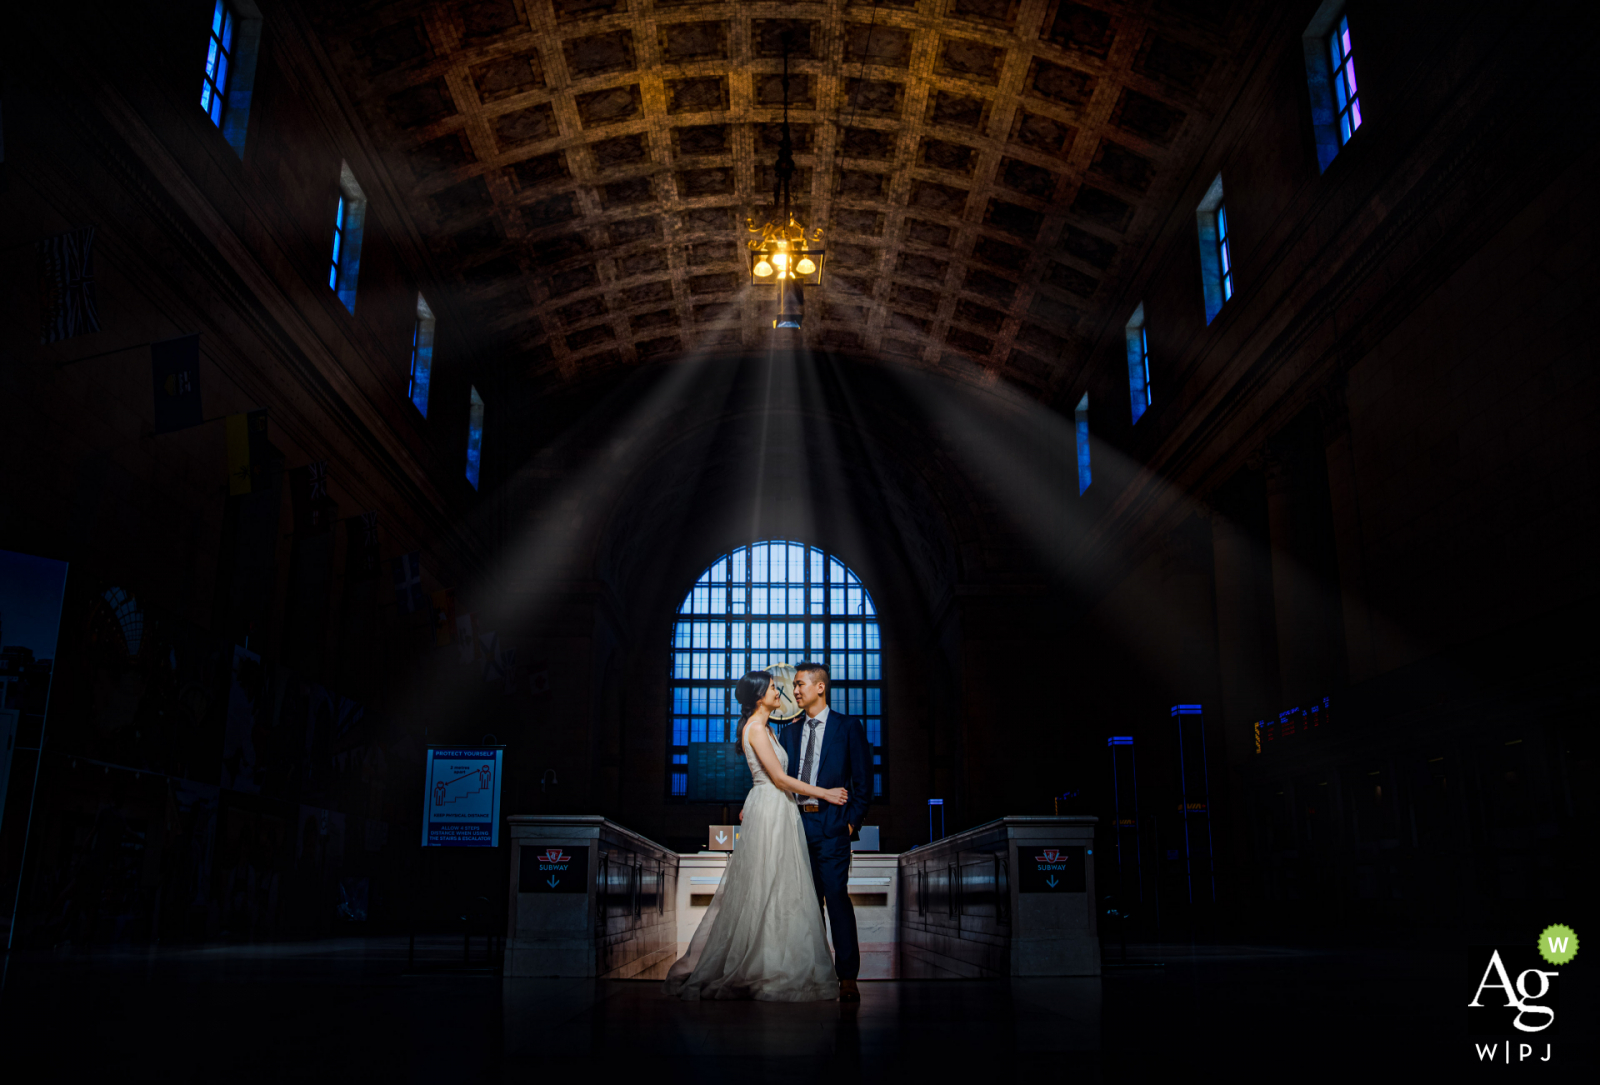 Toronto creative wedding day portrait of the couple center framed under the building Lights